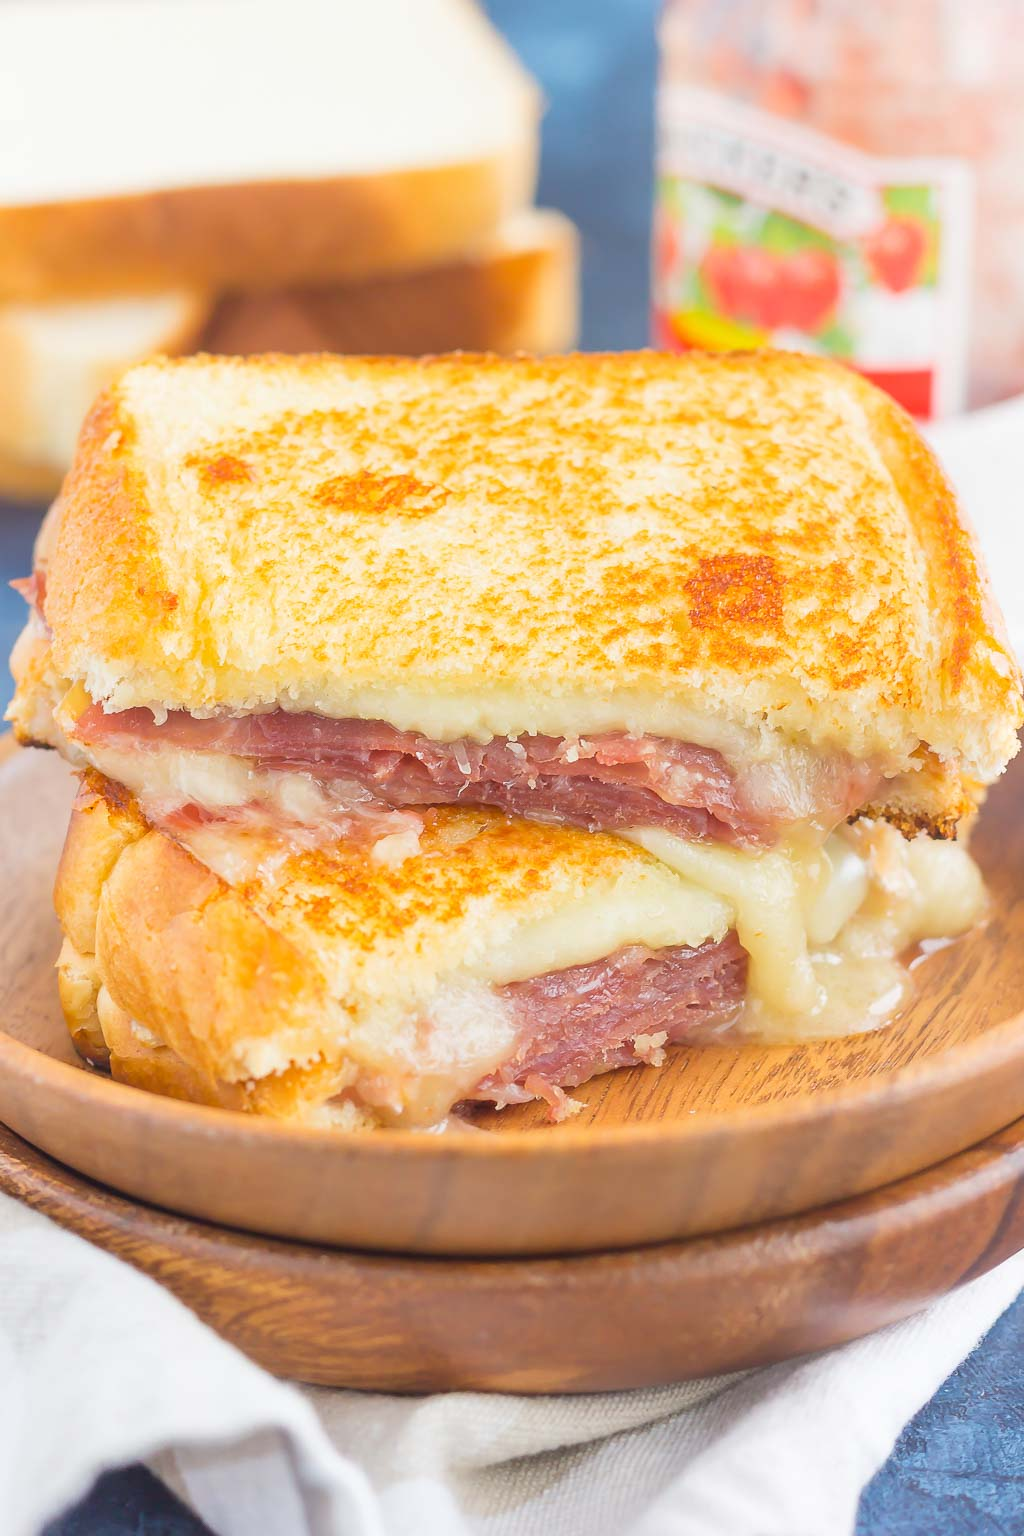 This Prosciutto, Raspberry and Brie Grilled Cheese is loaded with fresh slices of prosciutto, raspberry jam, brie and mozzarella cheeses. Grilled until golden and melty, this sandwich is the perfect comfort dish! #grilledcheese #grilledcheeserecipe #sandwich #prosciuttosandwich #prosciuttogrilledcheese #briegrilledcheese #maindish #lunch